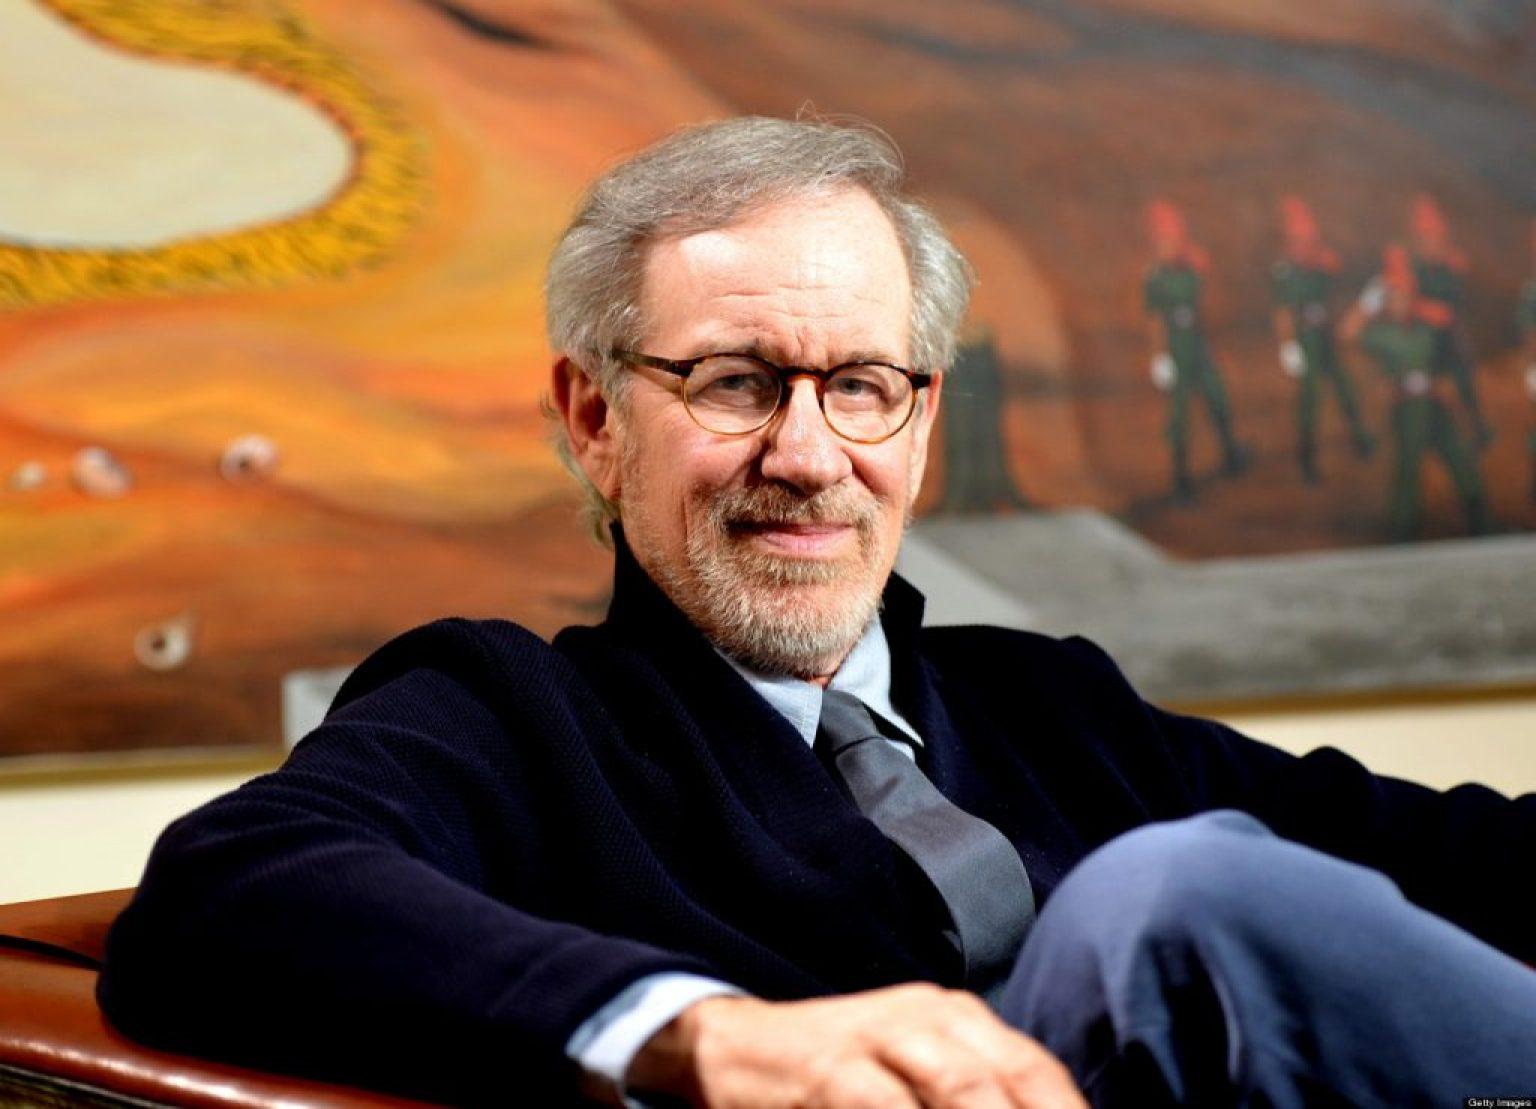 MUMBAI, INDIA - MARCH 11: US film director Steven Spielberg during his interview in Mumbai on March 11, 2013. (Photo by Bhaskar Paul/India Today Group/Getty Images)